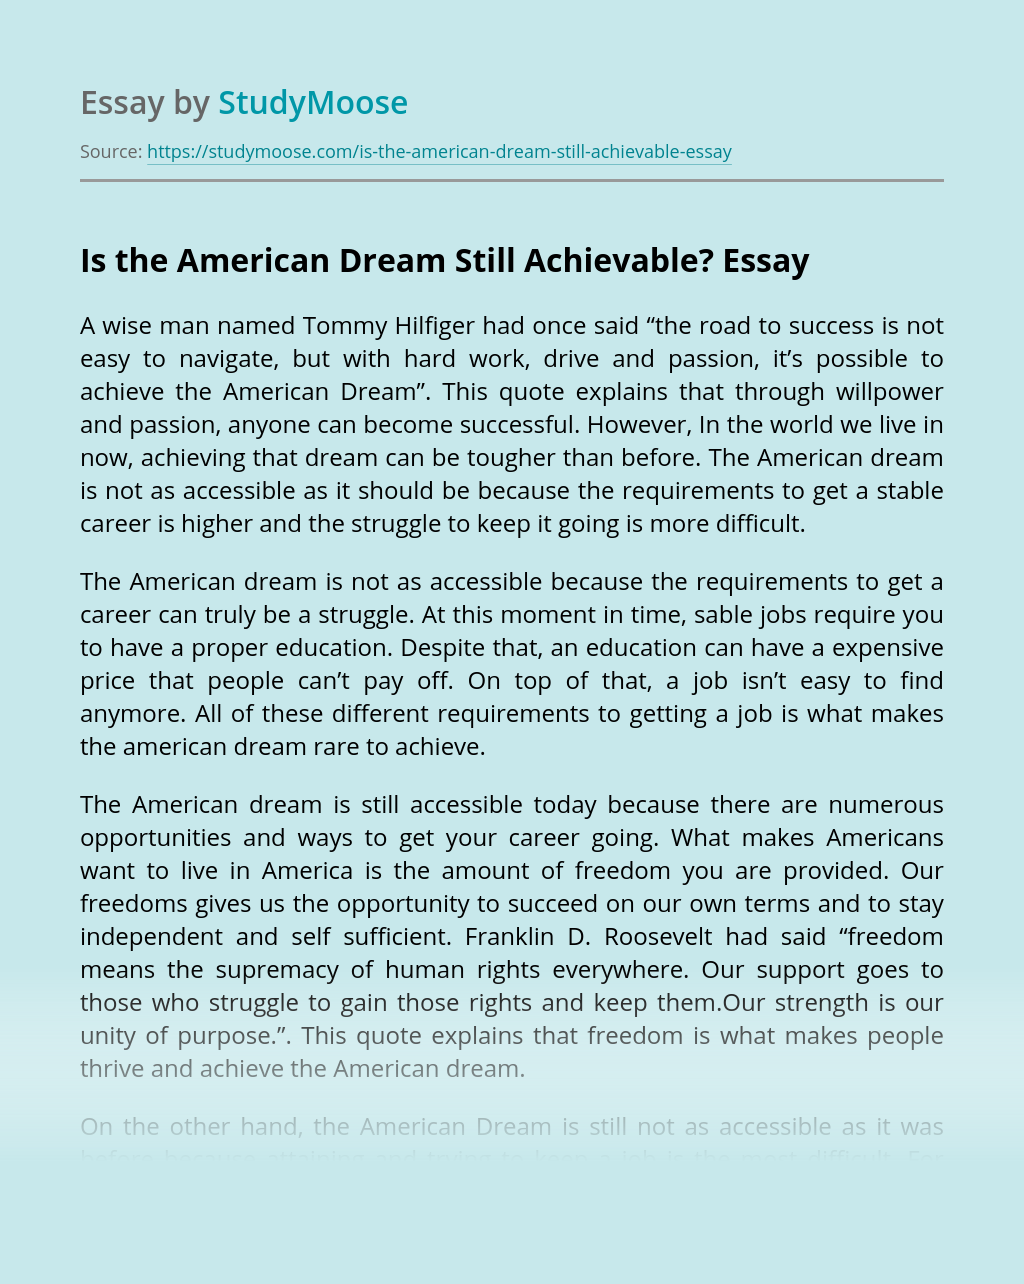 Is the American Dream Still Achievable?